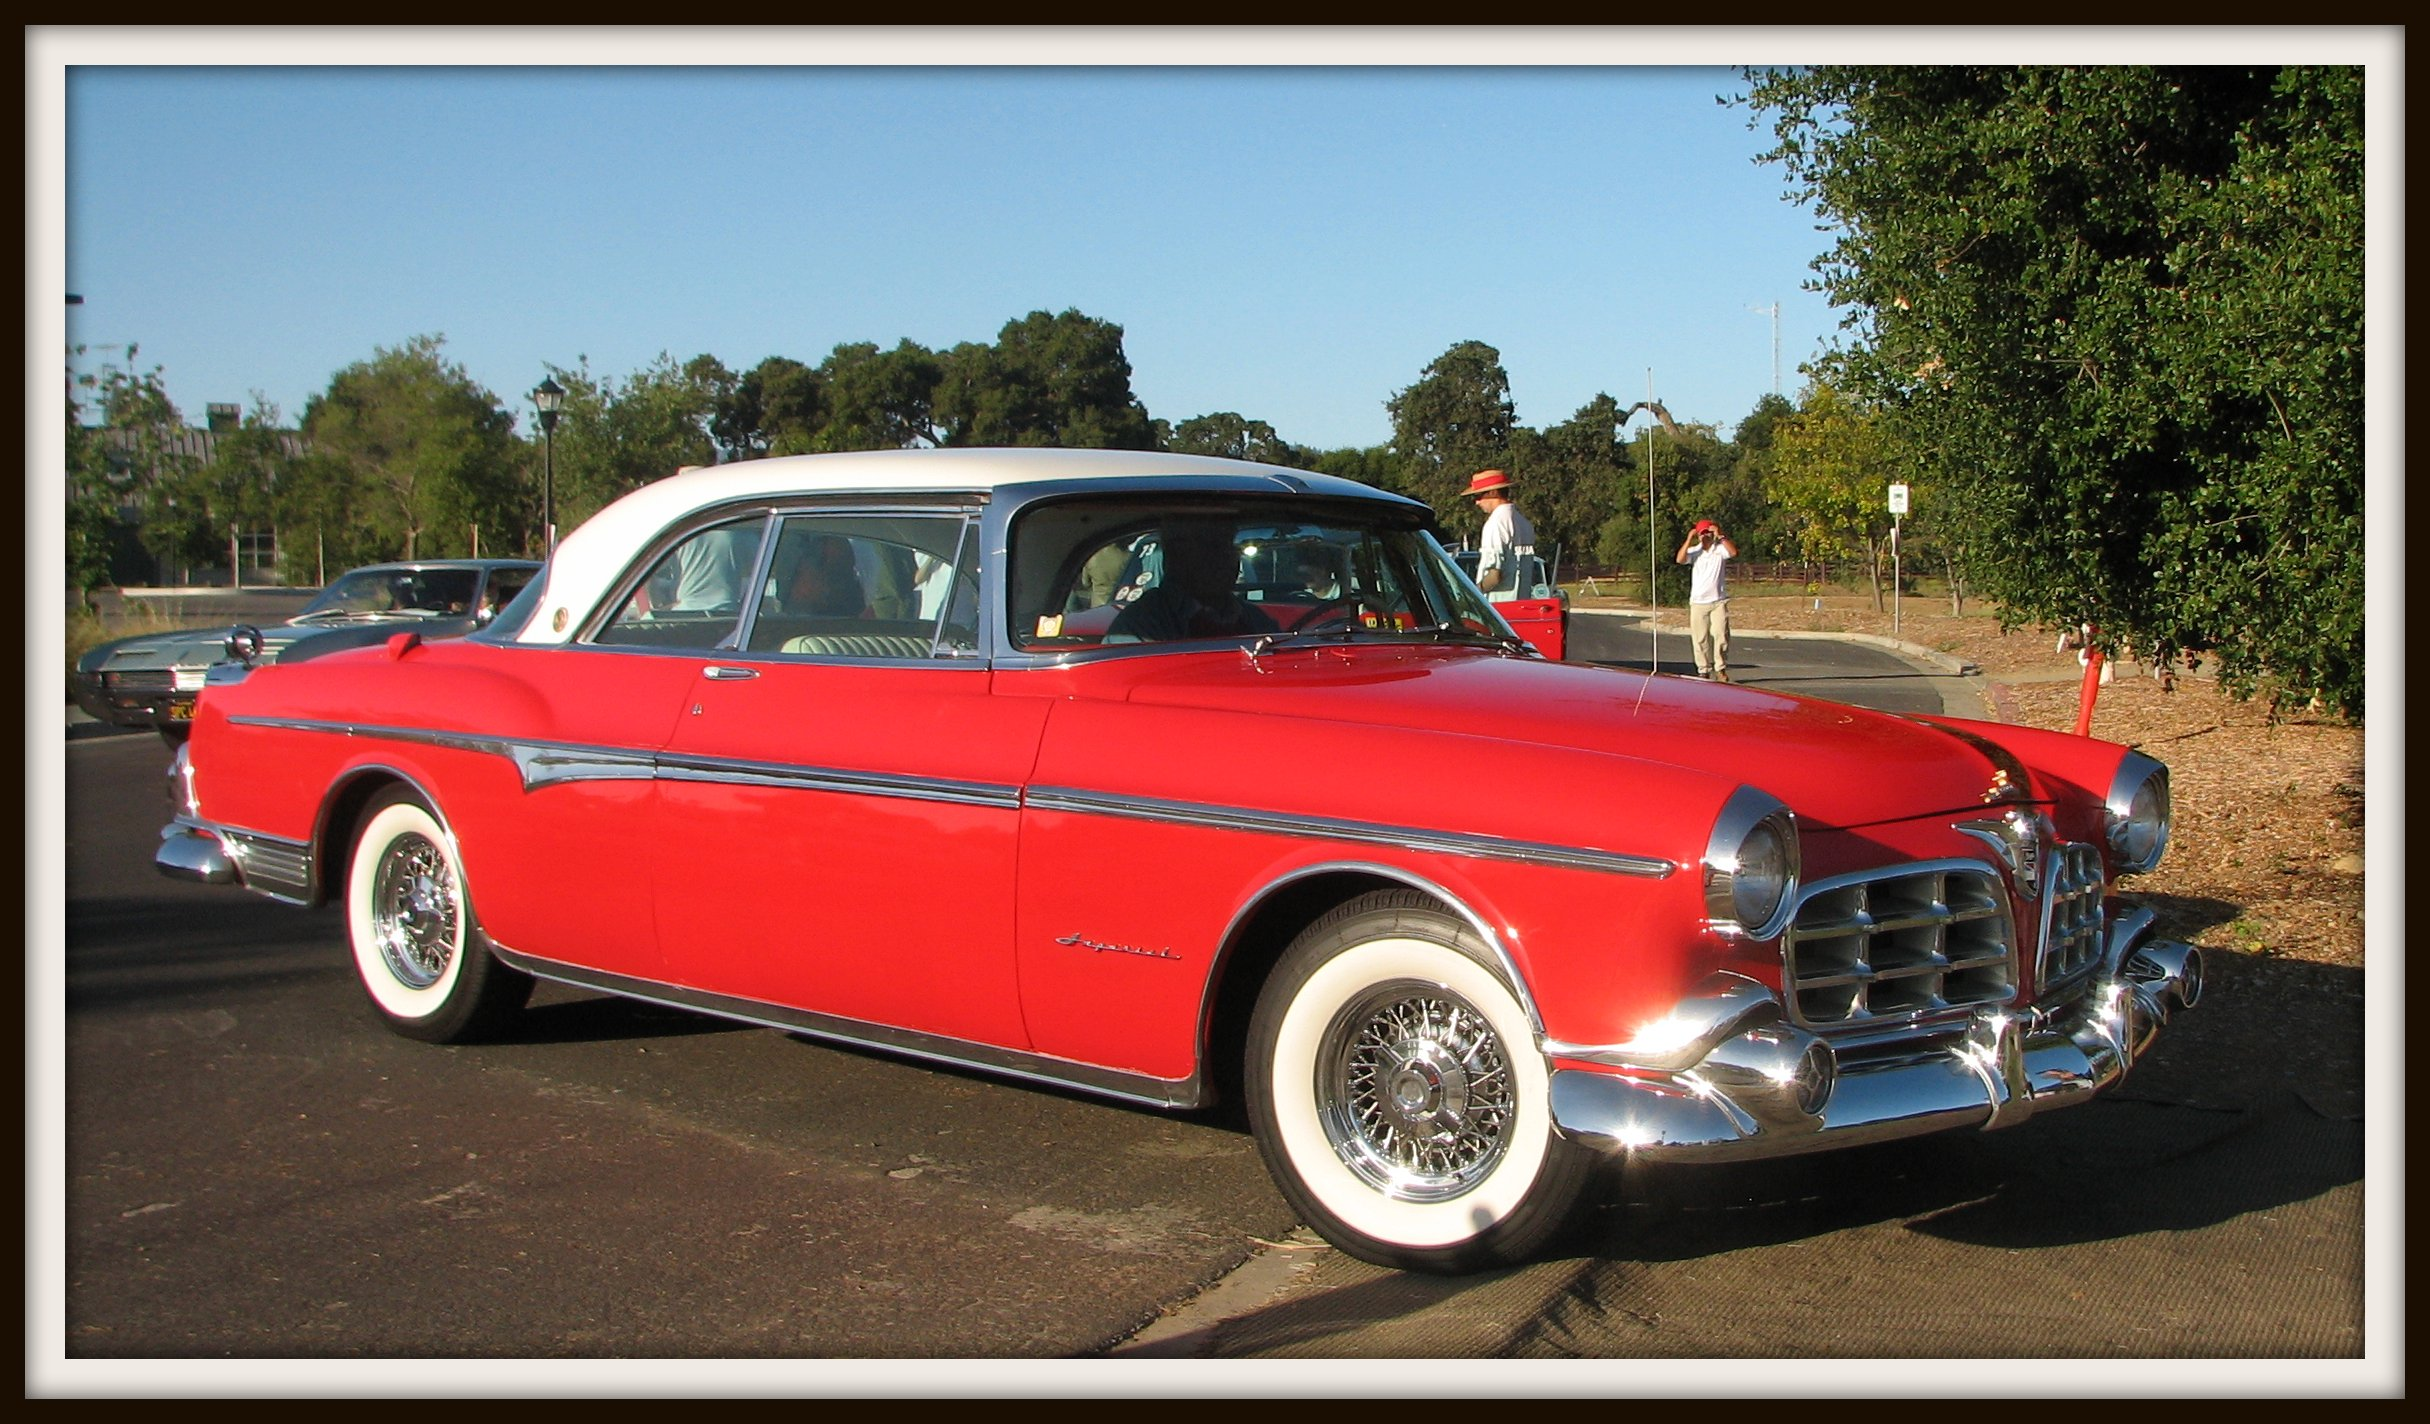 """1955 Chrysler C-300 """"worlds most powerful car of the time"""" PHOTO: BoldRide"""